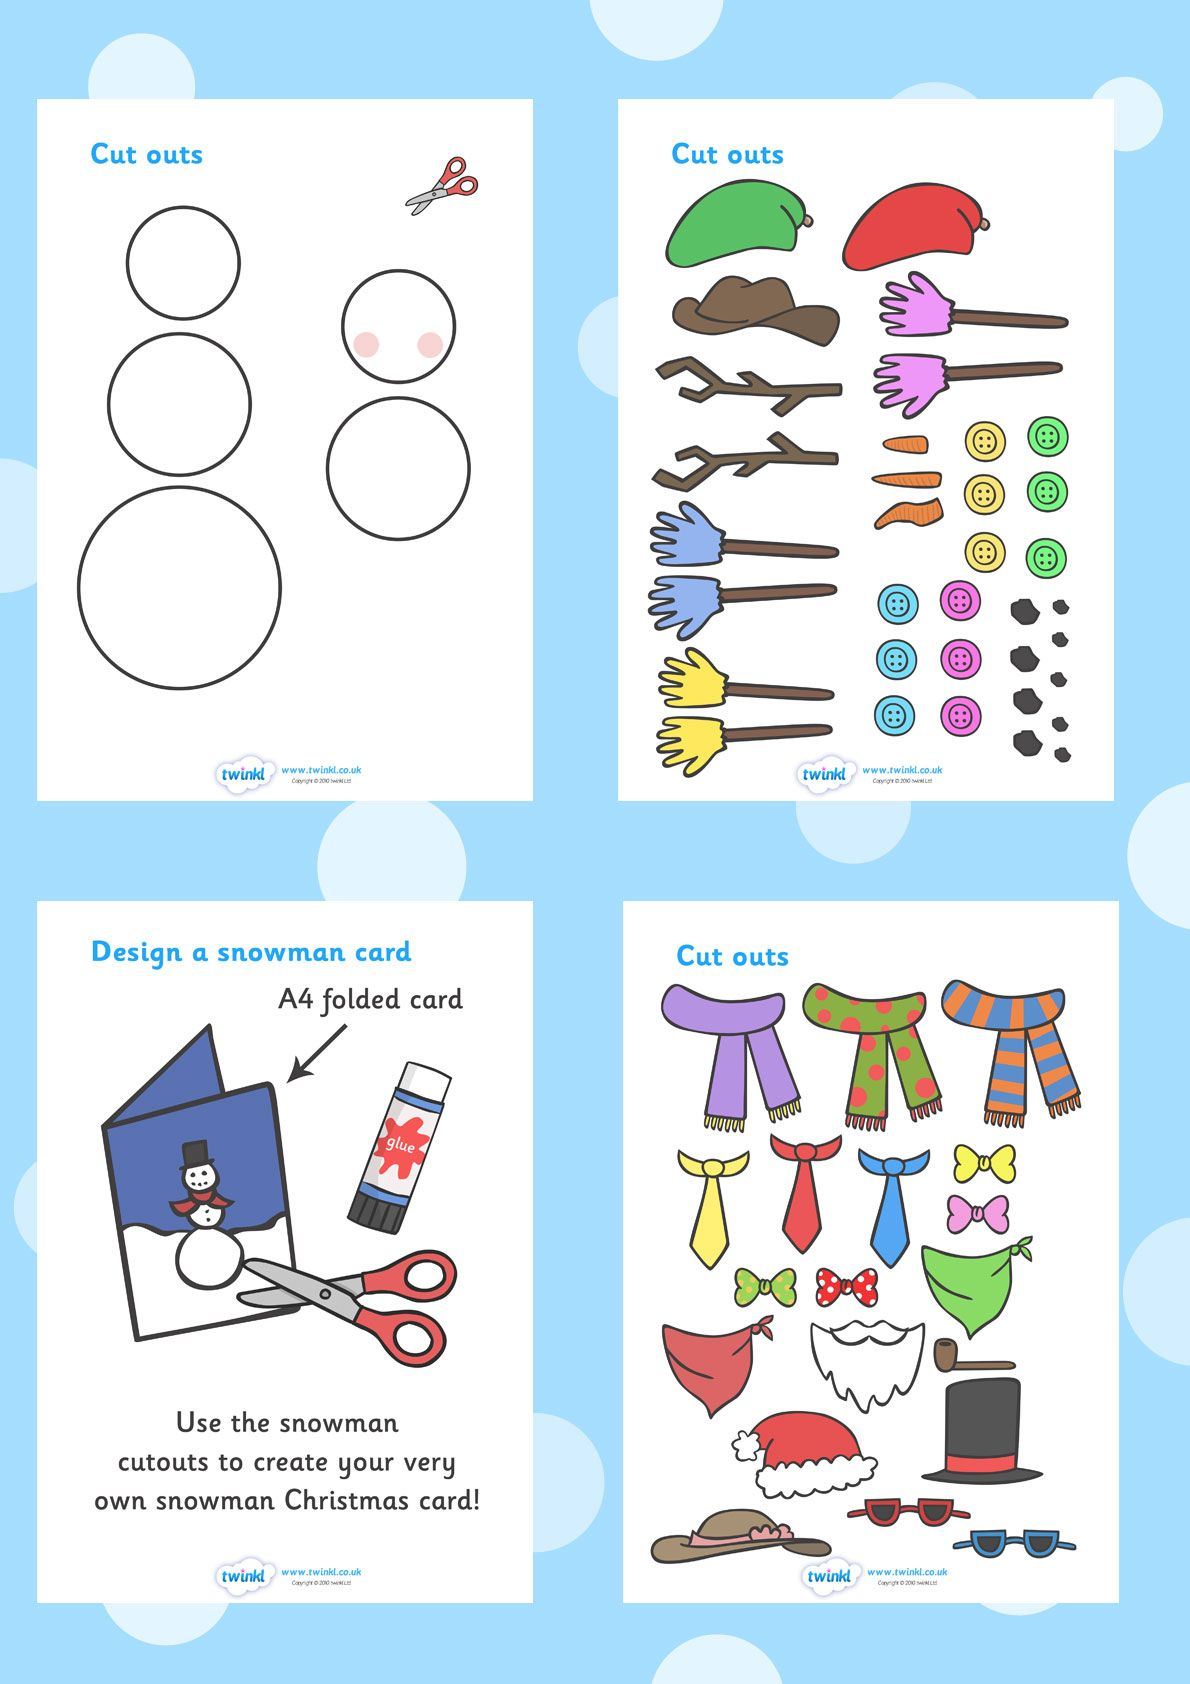 Christmas colouring in sheets twinkl - Twinkl Resources Snowman Christmas Card Designing Worksheets Printable Resources For Primary